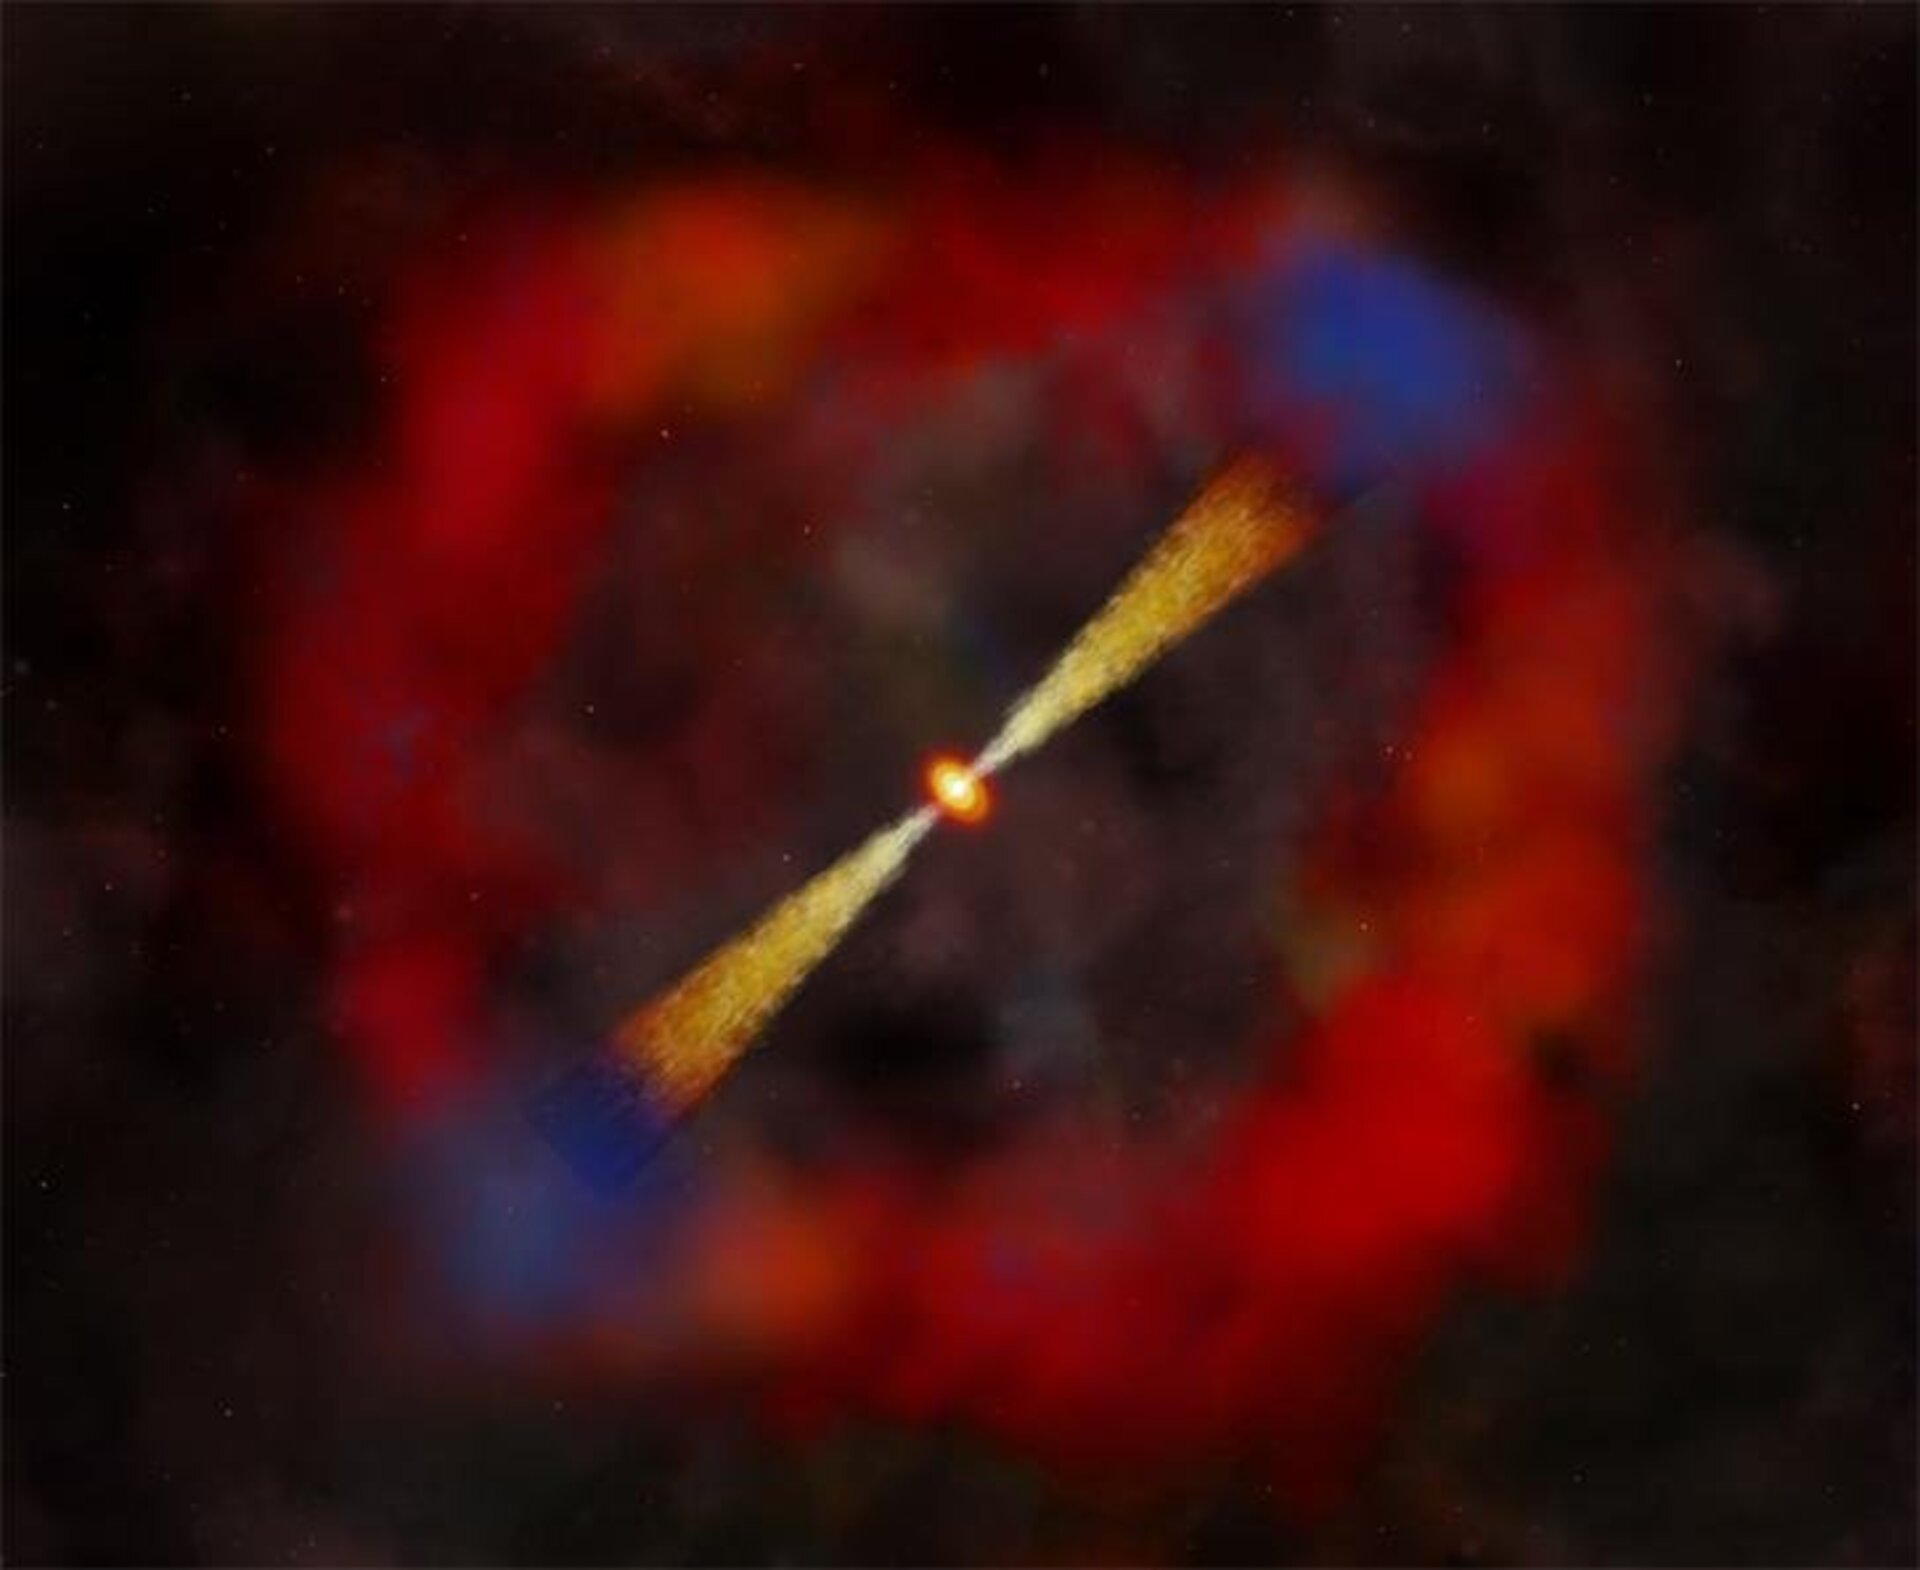 Artist impression of a low-energy gamma-ray burst